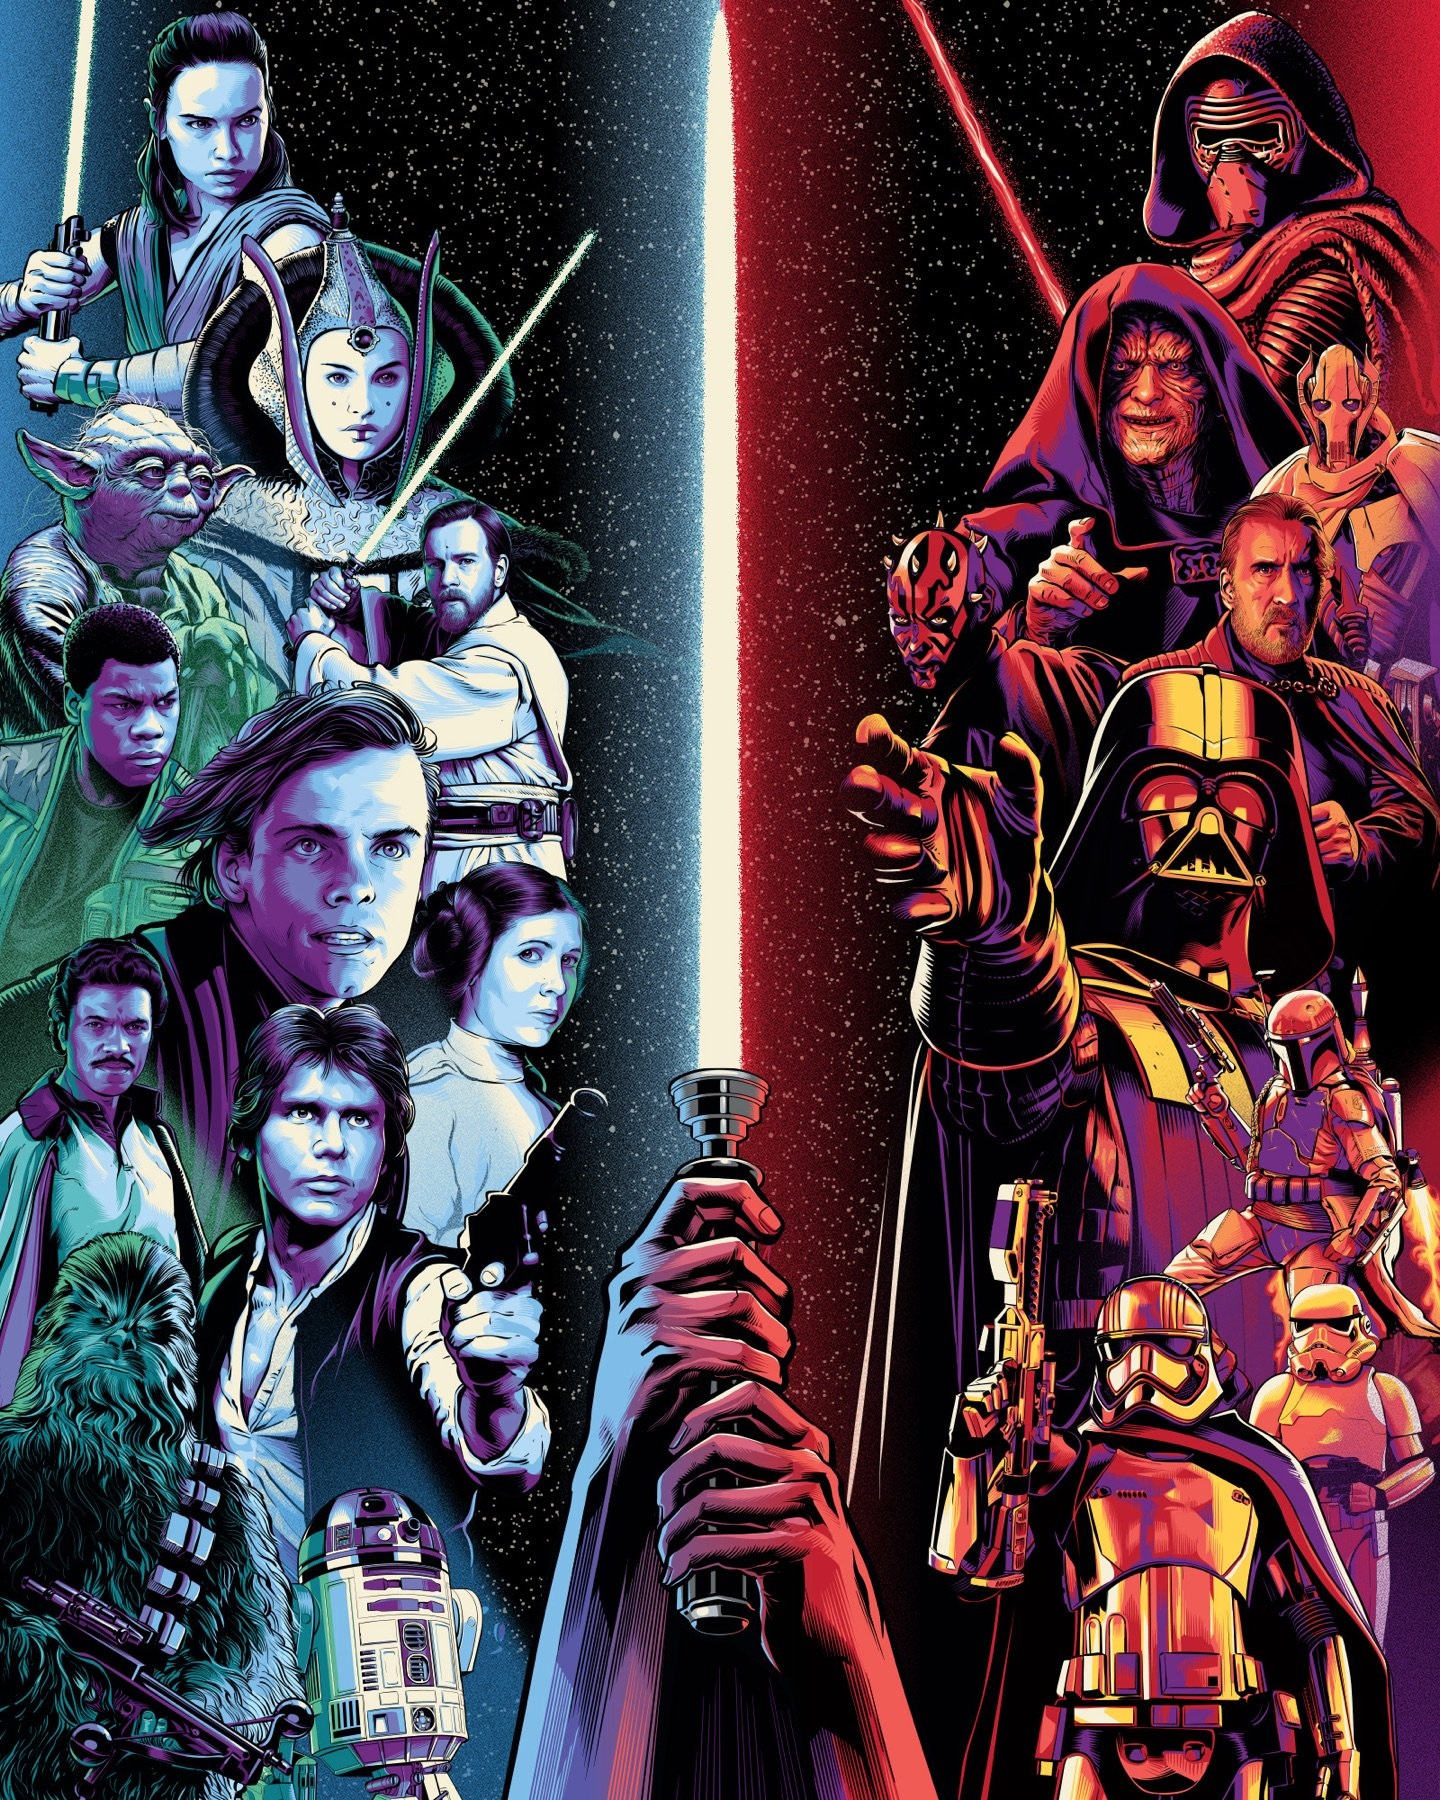 Star Wars Celebration Chicago logo poster